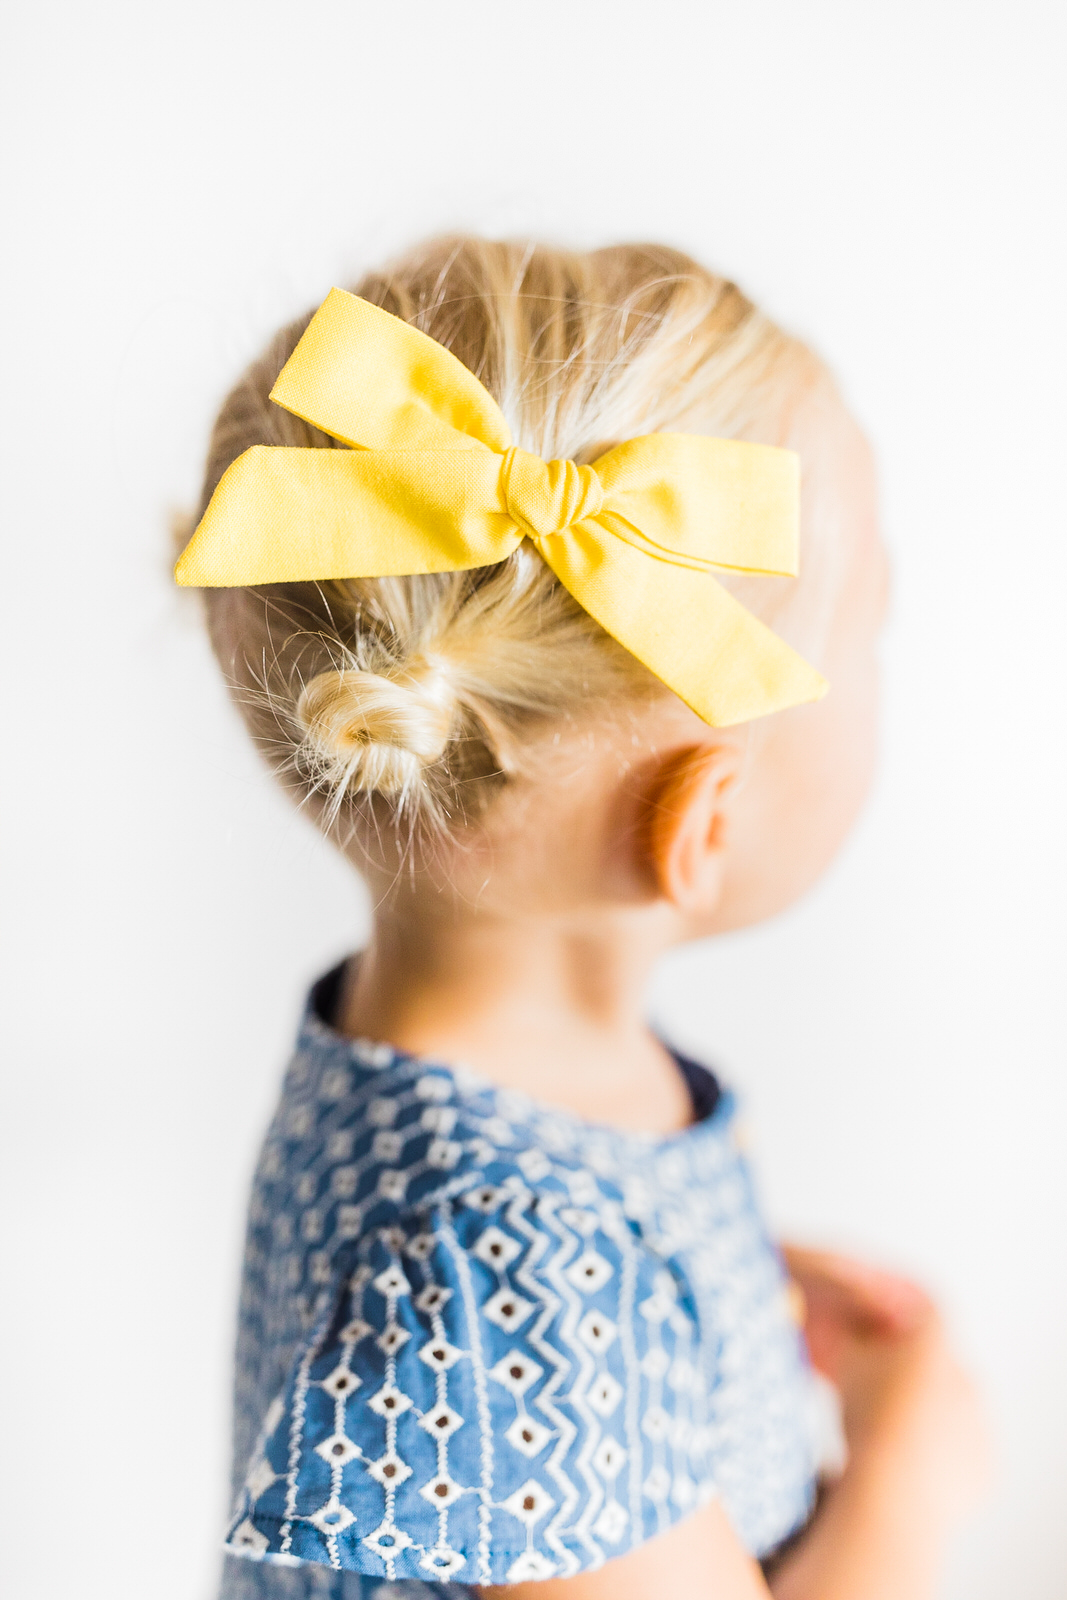 big-island-photographer-toddler-girls-bows-small-business-8591.jpg